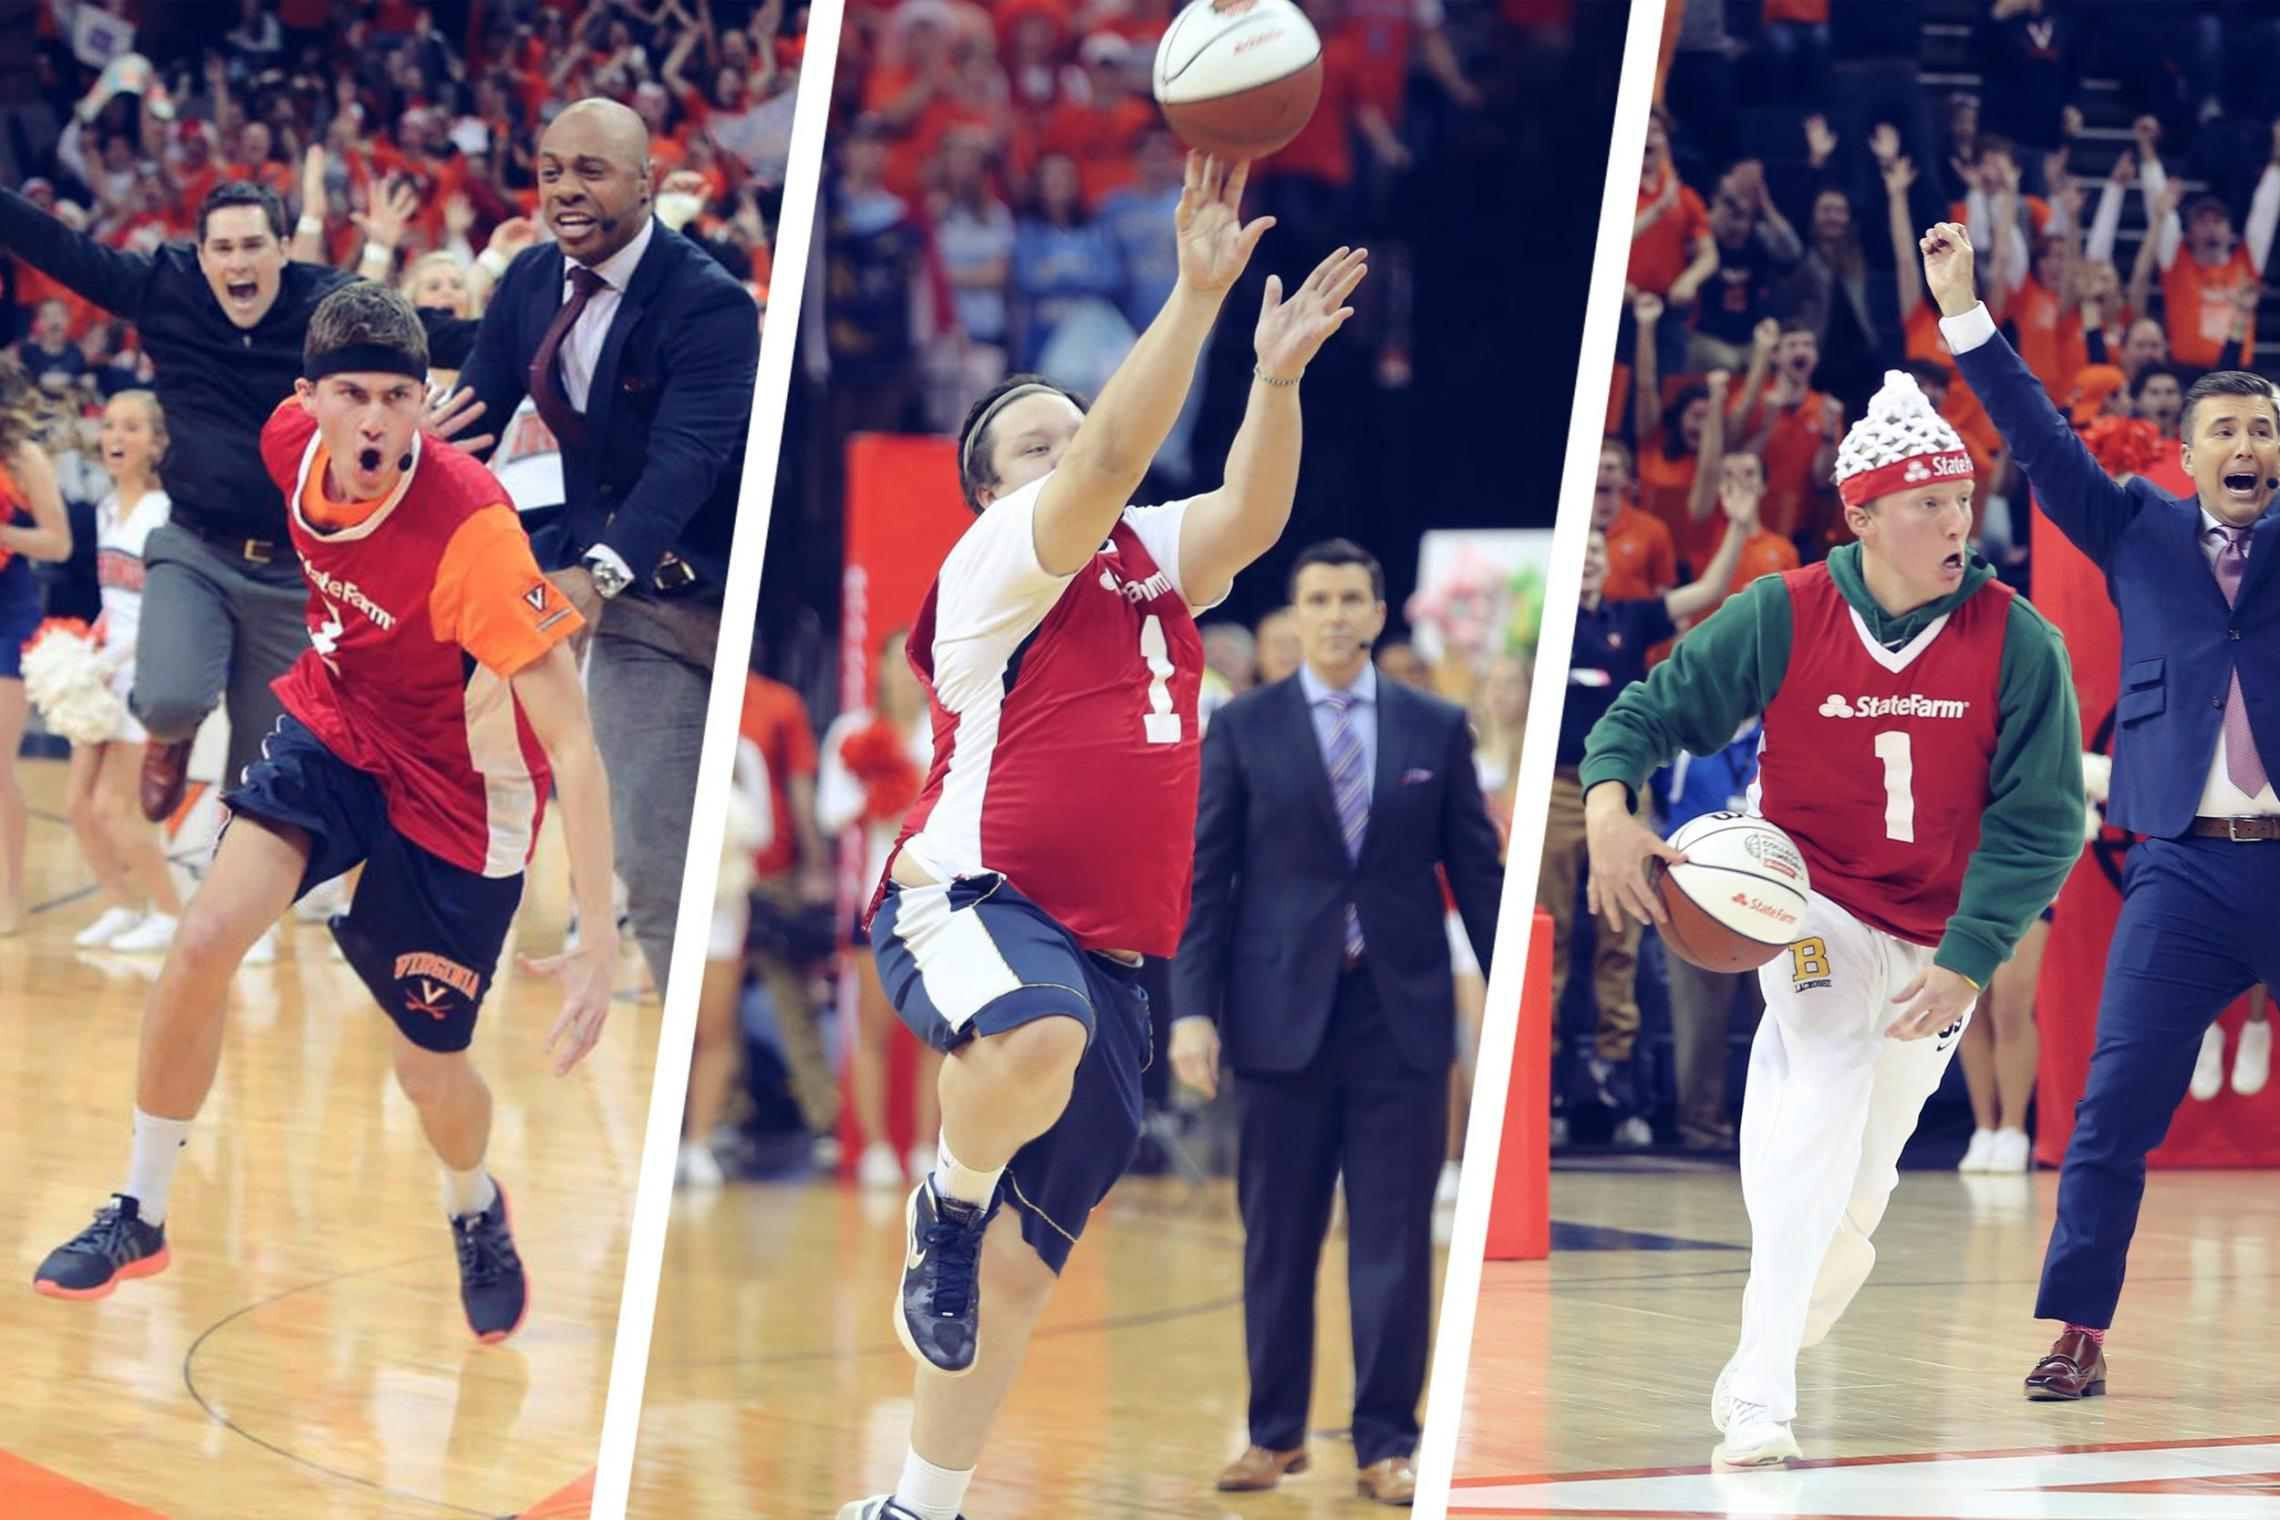 UVA students Tyler Lewis (left) and Andrew Board (center) made half-court shots in 2015 and 2016 before Angus Binnie followed suit last year.